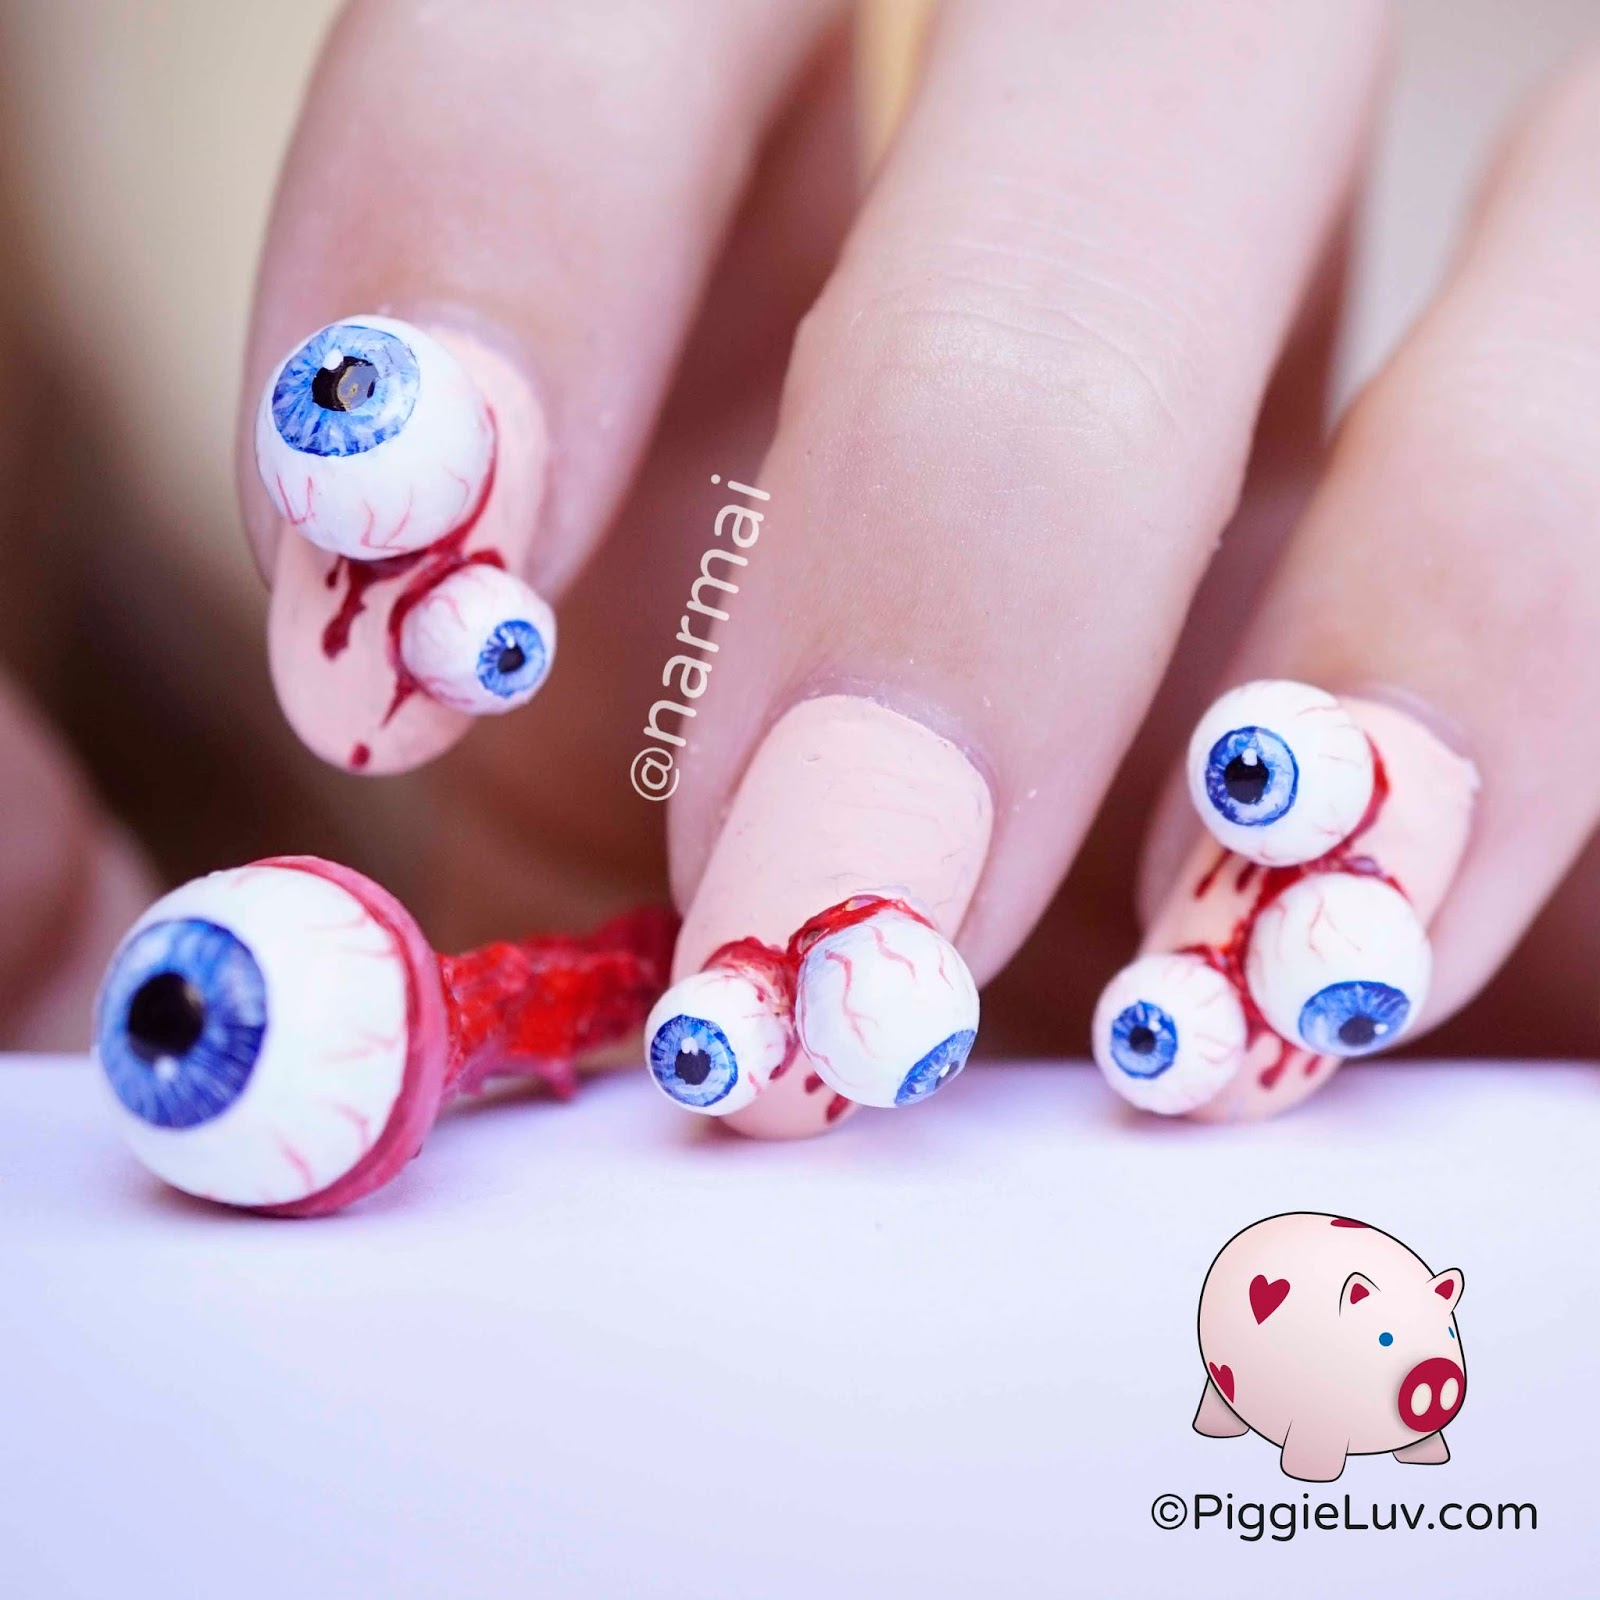 PiggieLuv: Eyeballs nail art for Halloween